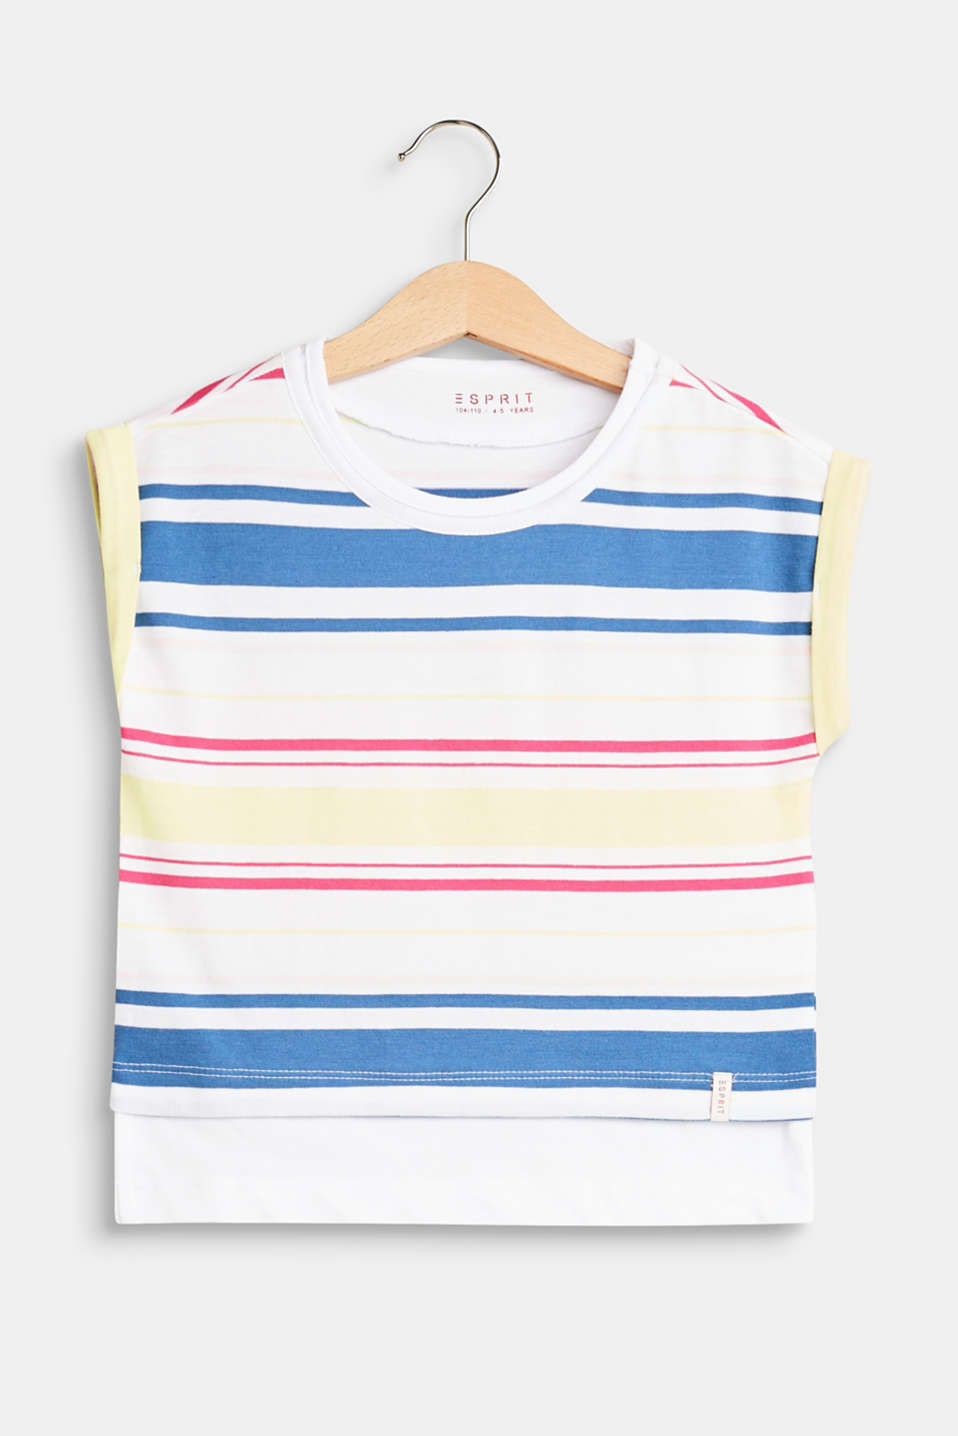 Esprit - Striped T-shirt with a layered hem, 100% cotton